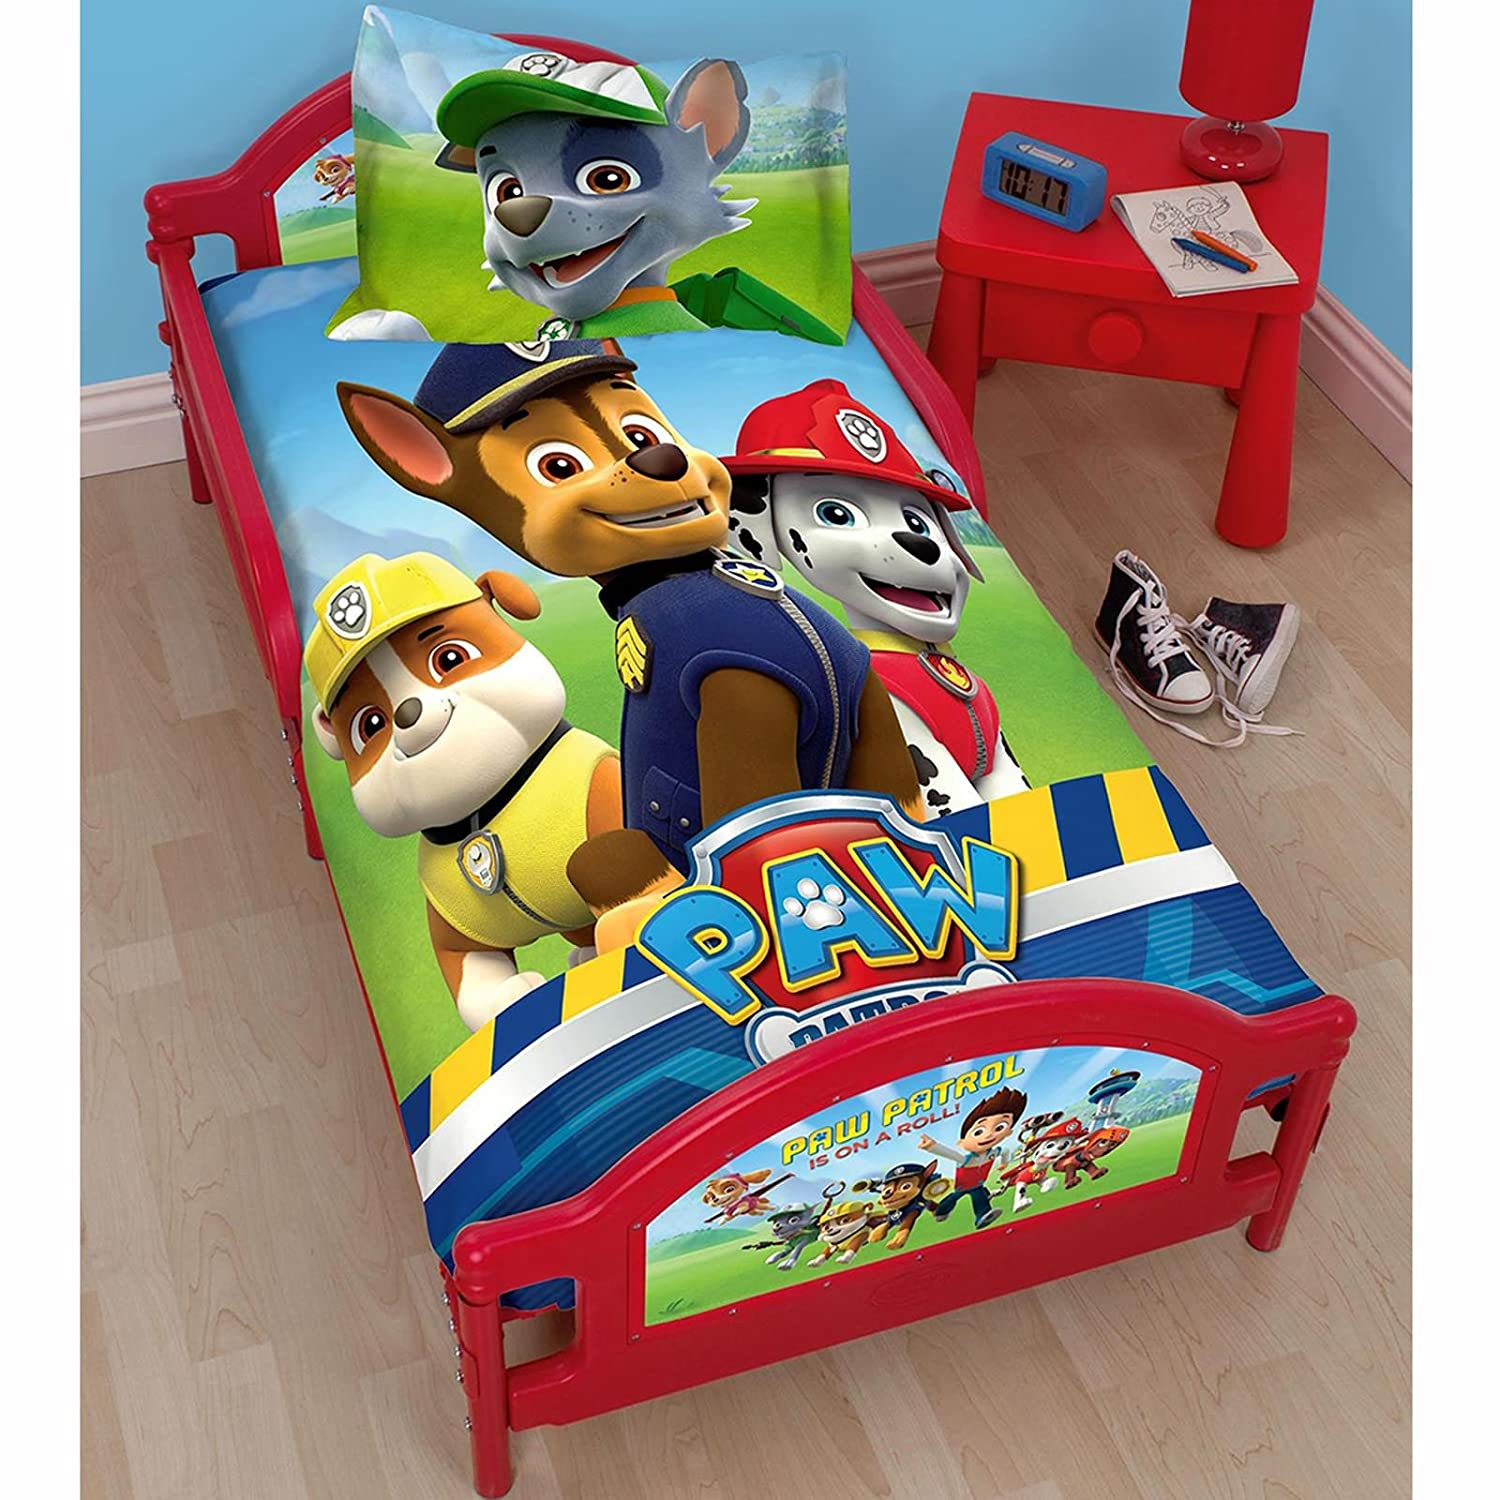 Paw Patrol Rescue Junior Toddler Bed Fully Sprung Mattress Amazoncouk Kitchen Home